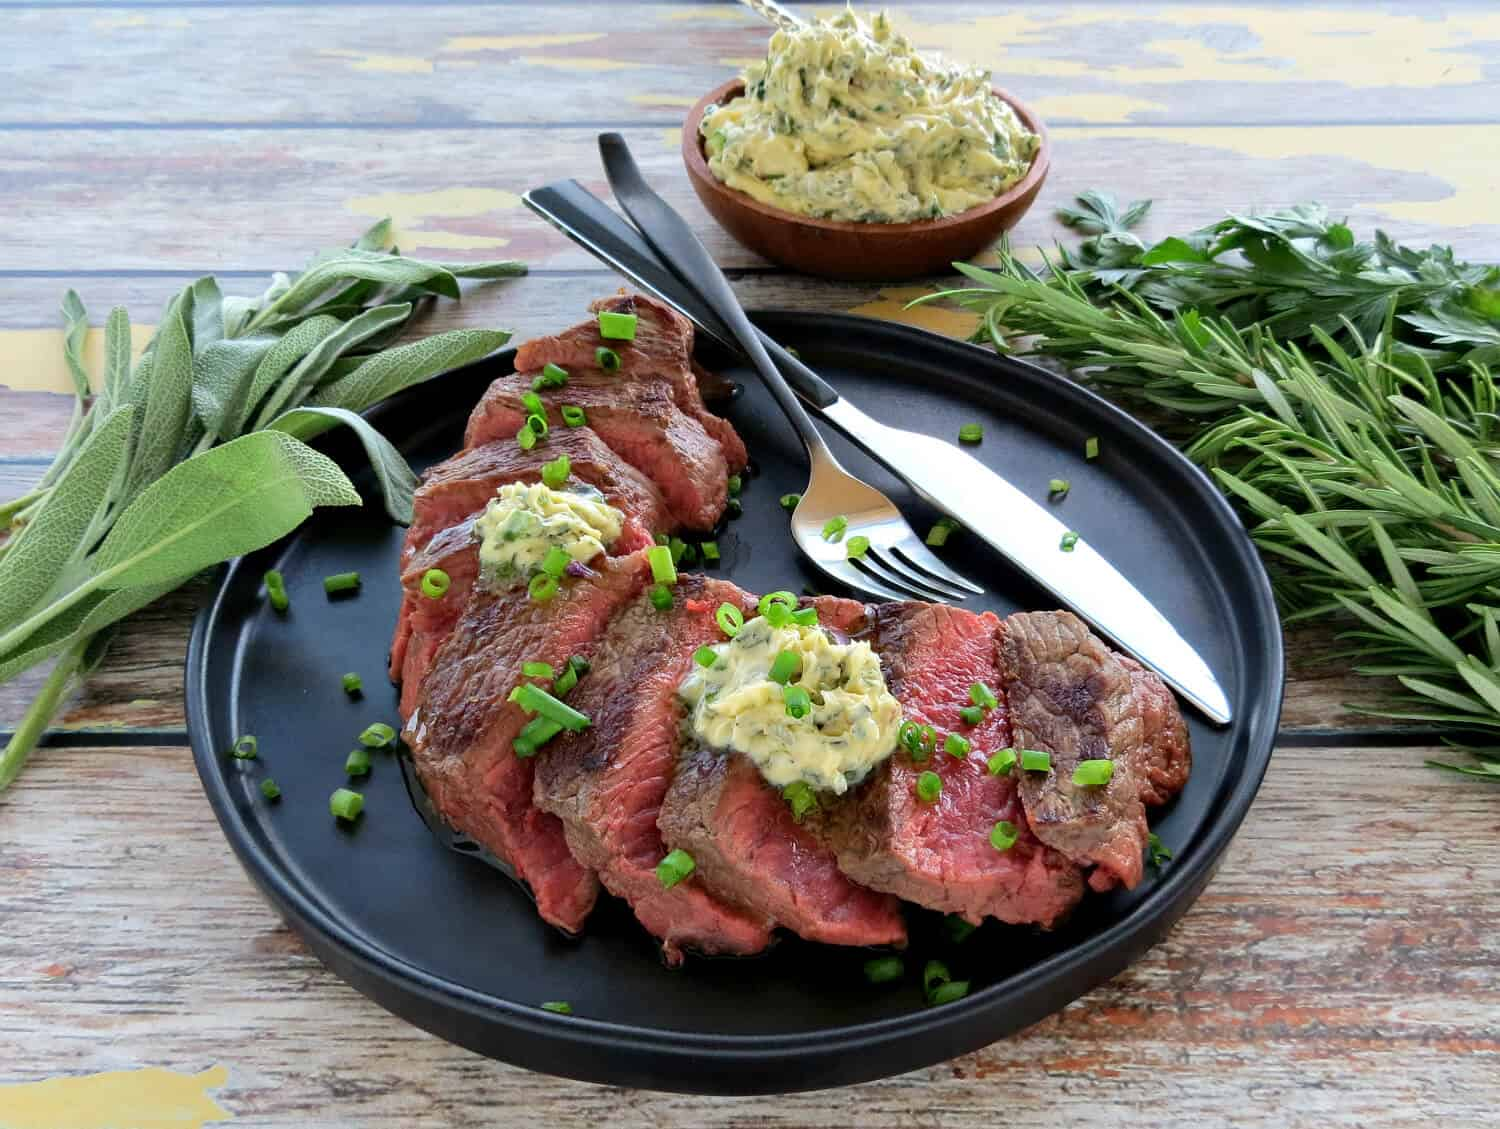 Easy Herb Butter served on Grilled Steak